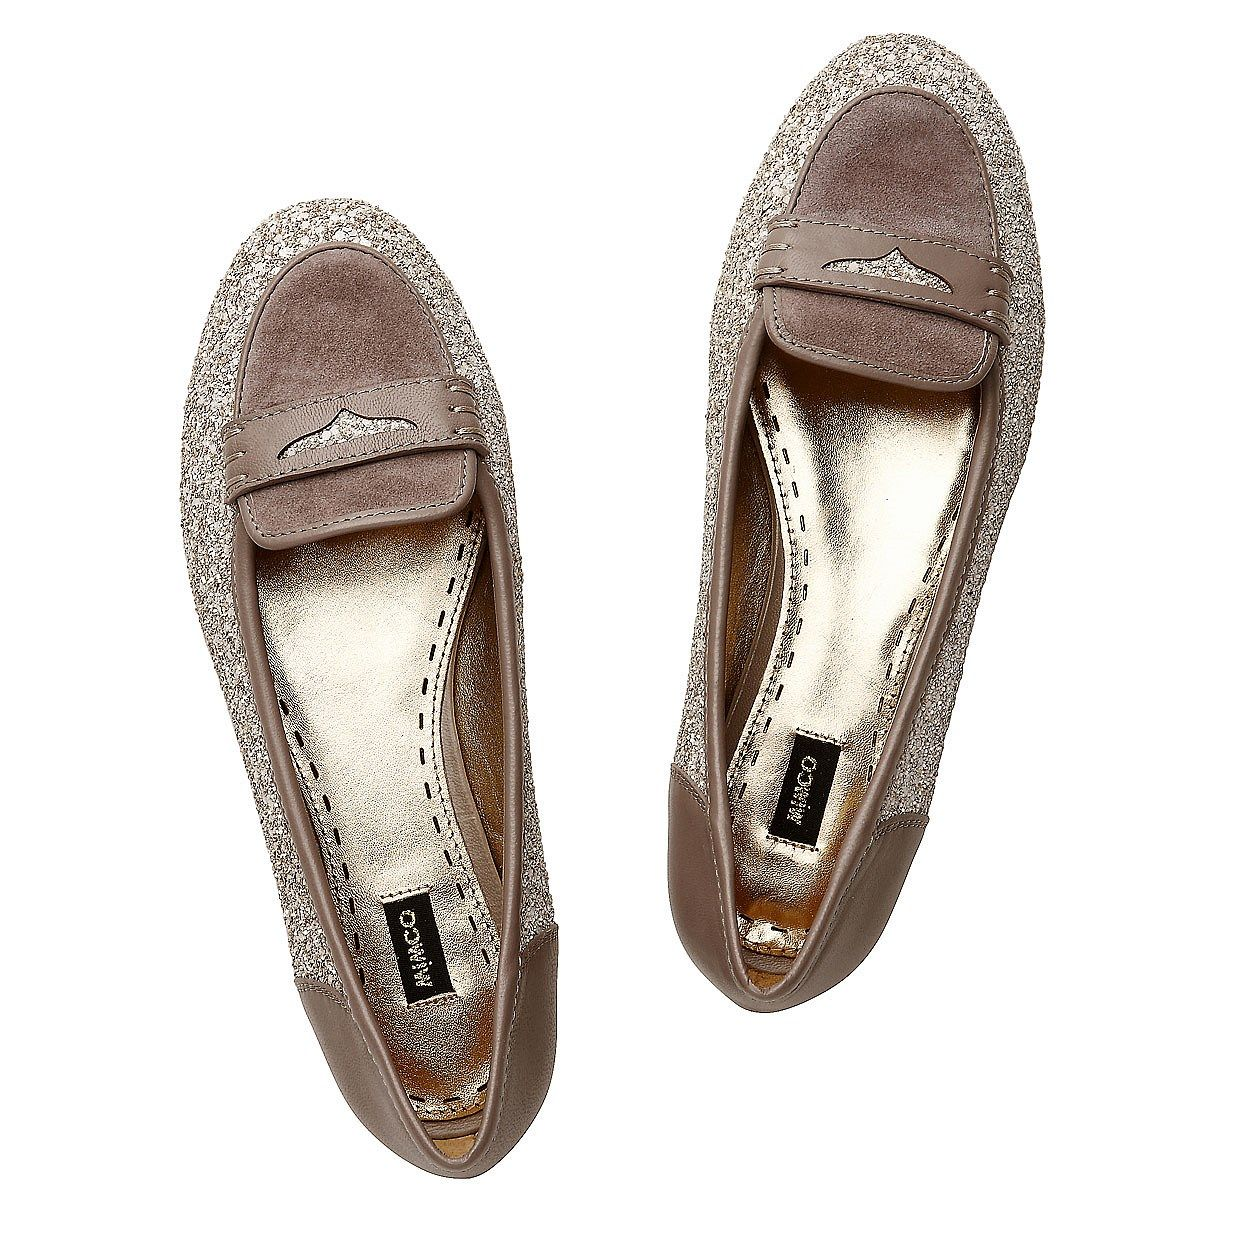 ENCHANTED WAVE LOAFER | Mimco - I'm also in love with these!